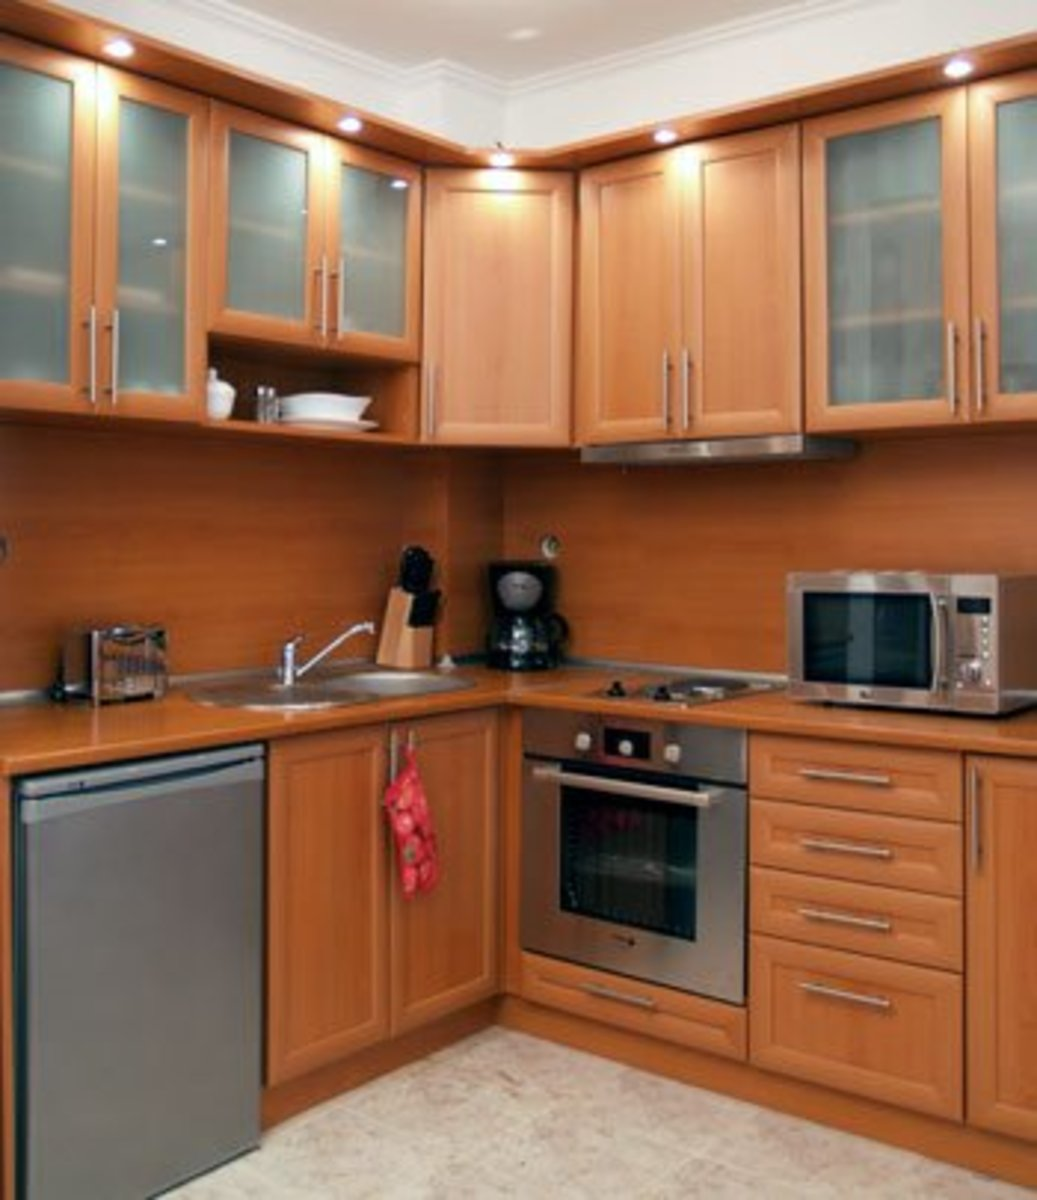 kitchen design and decorating ideas on a budget dengarden